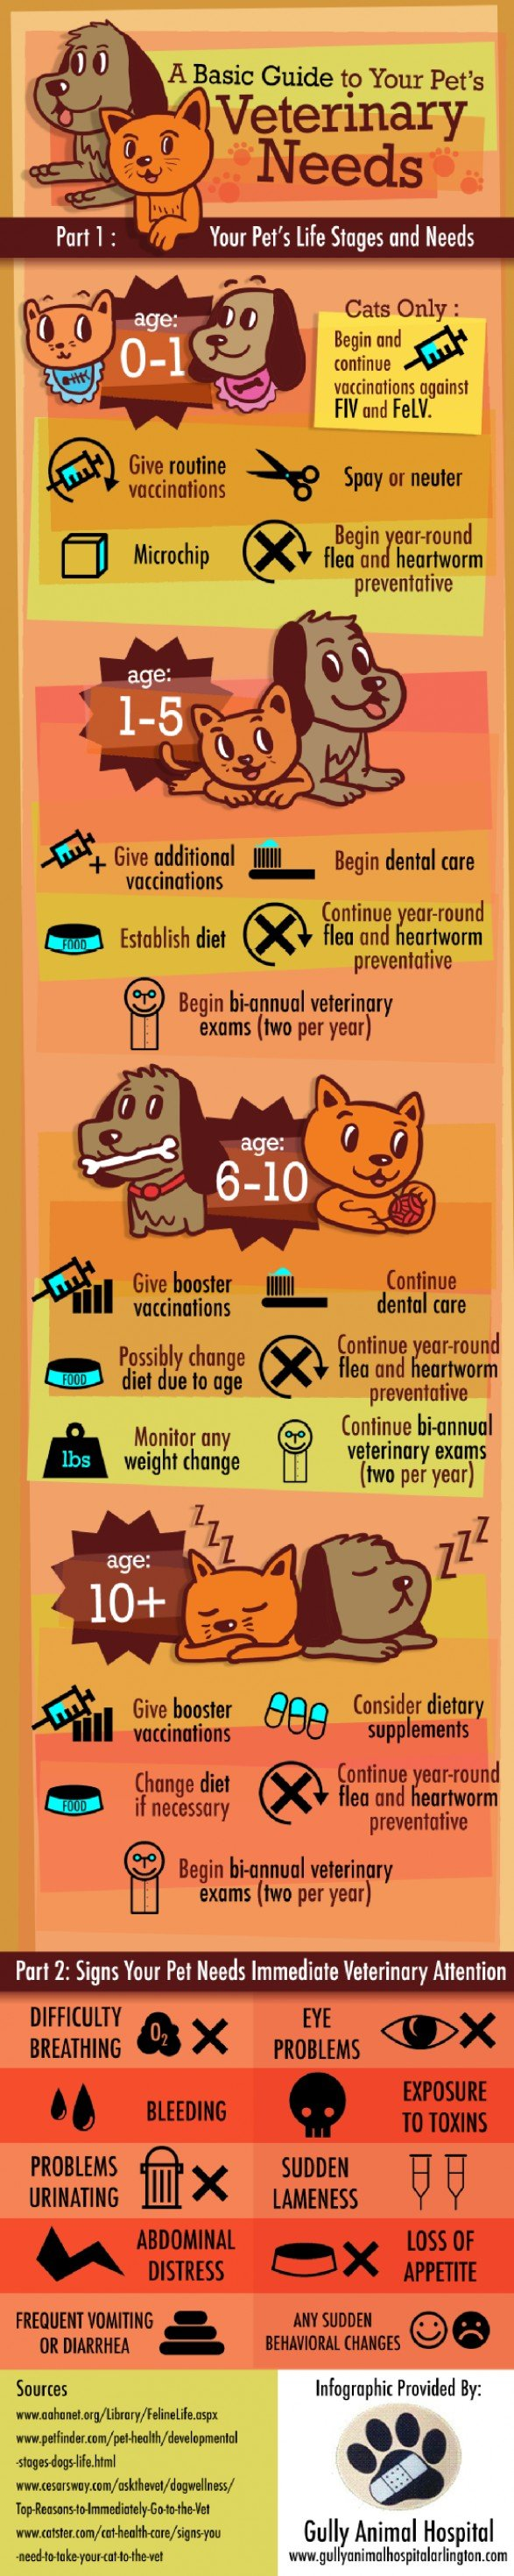 A Basic Guide to Your Pet